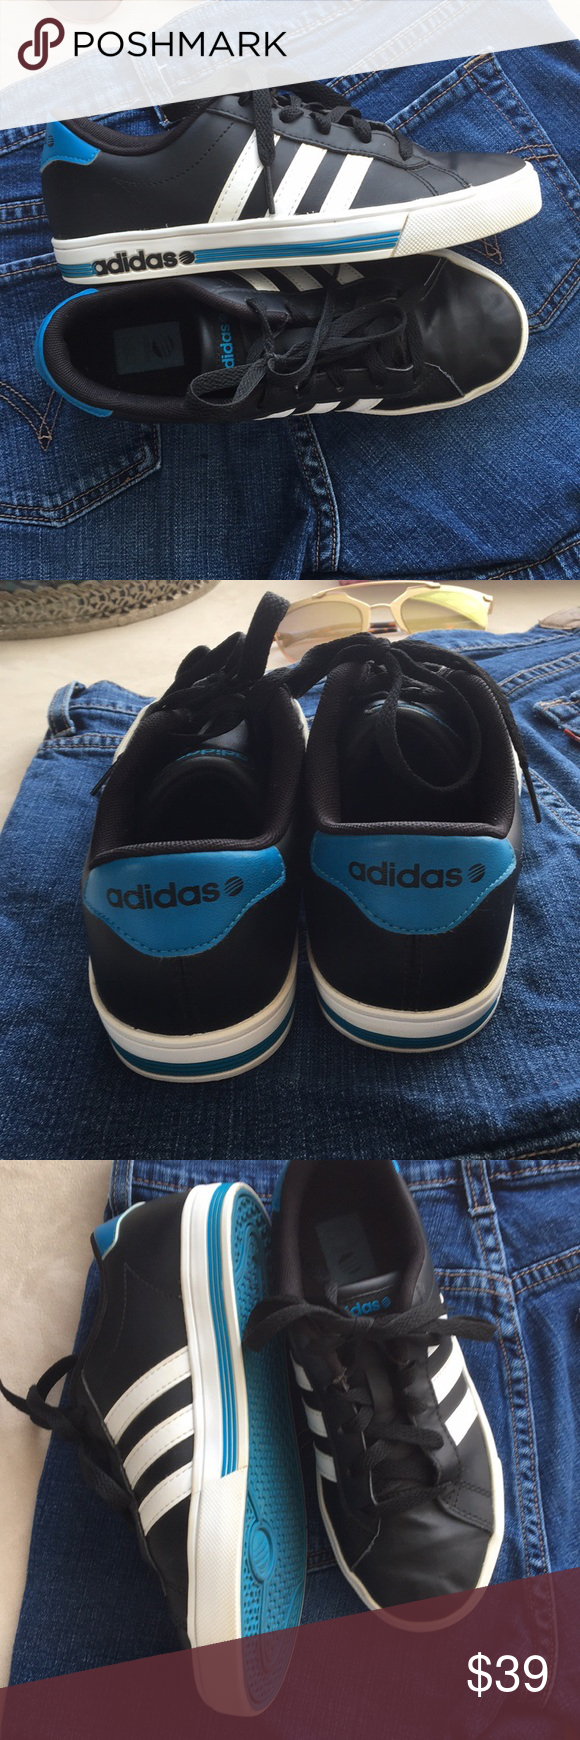 Cool kids Adidas sneakers Black, white and blue. Worn once ...